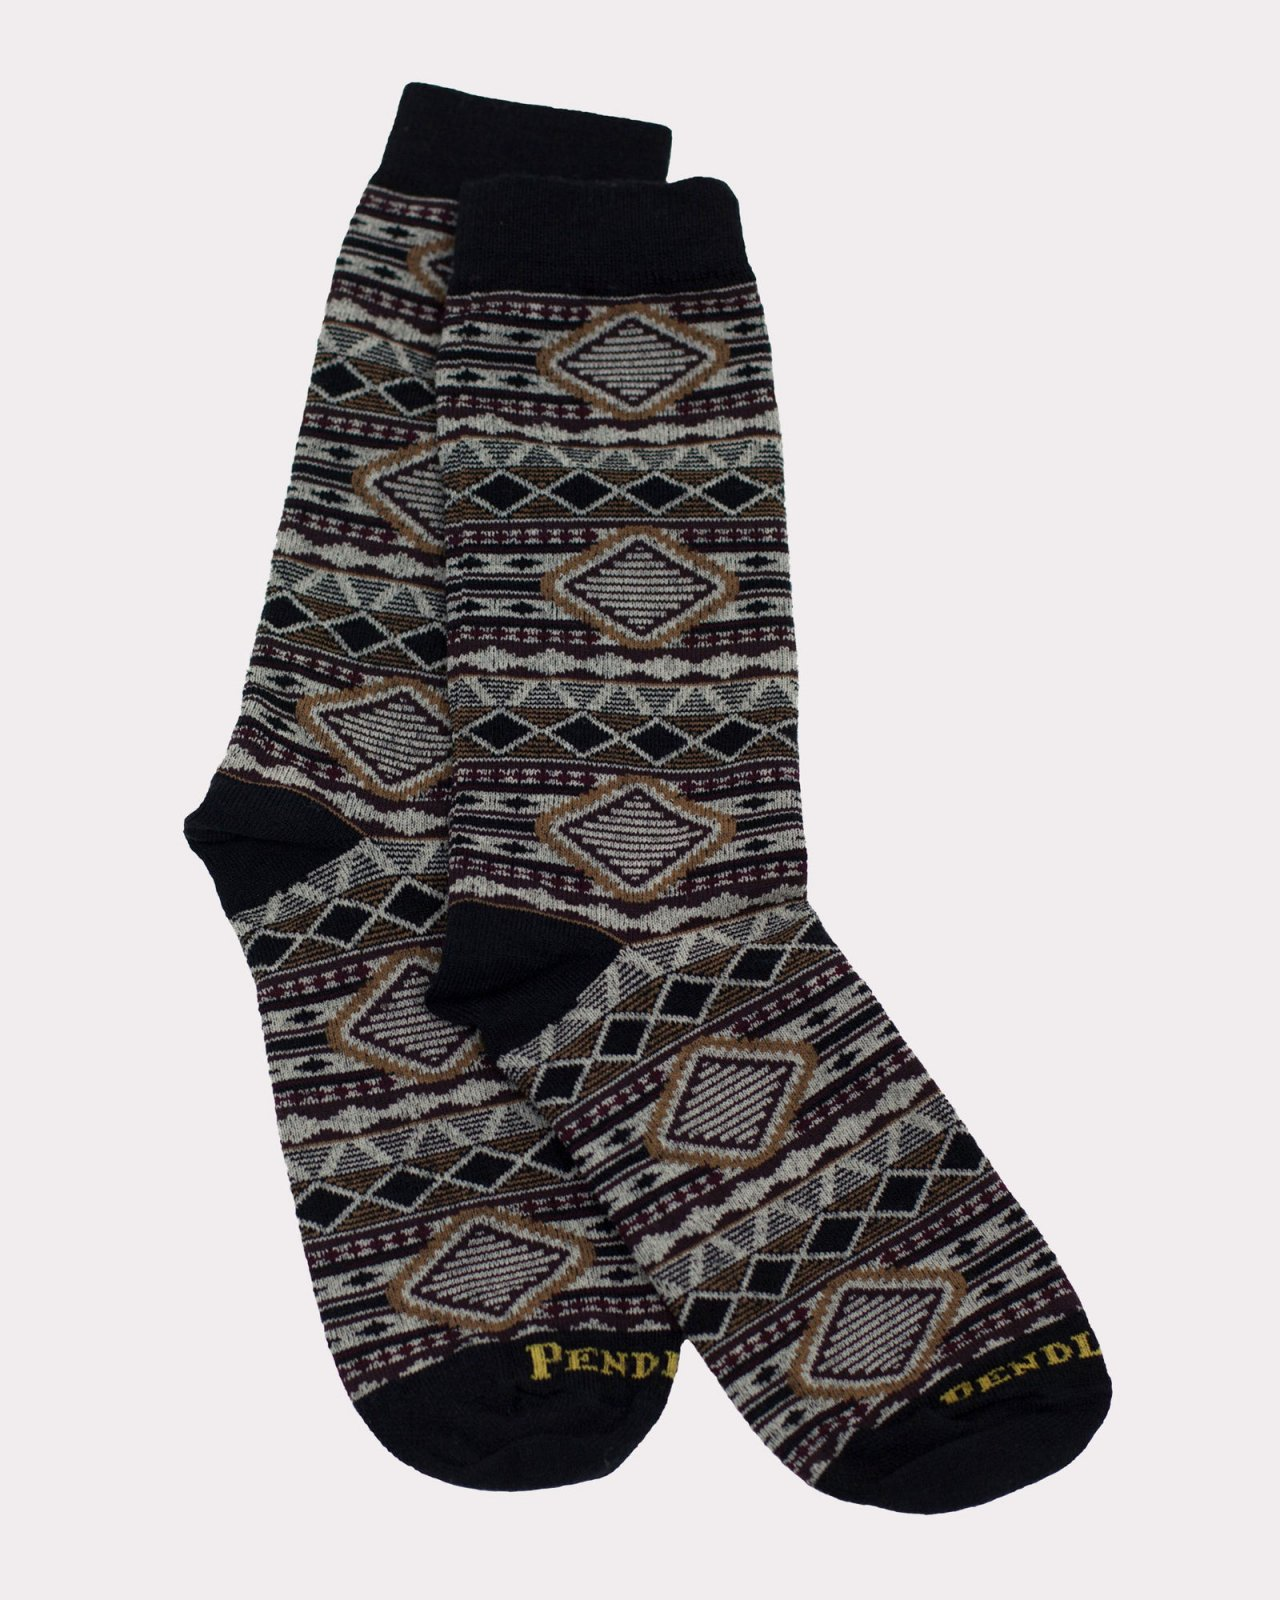 Cedar Mountain Socks from Pendleton